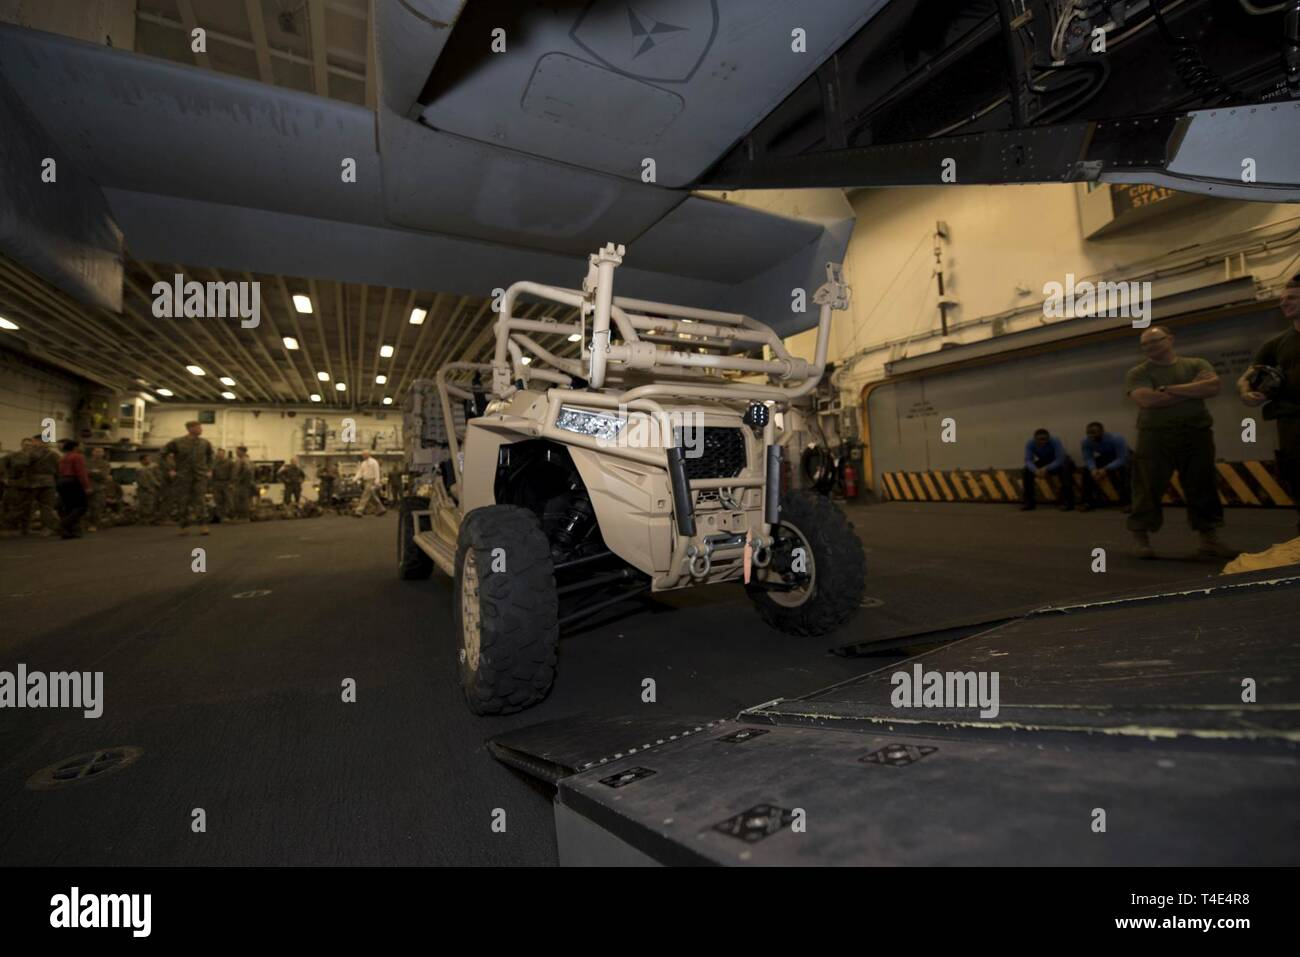 SOUTH CHINA SEA (March 29, 2019) - Marines load an MRZR ultra-light ground mobility vehicle onto an MV-22 Osprey, assigned to Marine Medium Tiltrotor Squadron (VMM) 268, in the hangar bay of the amphibious assault ship USS Wasp (LHD 1). Wasp, flagship of Wasp Amphibious Ready Group, is operating in the Indo-Pacific region to enhance interoperability with partners and serve as a lethal ready-response force for any type of contingency. - Stock Image